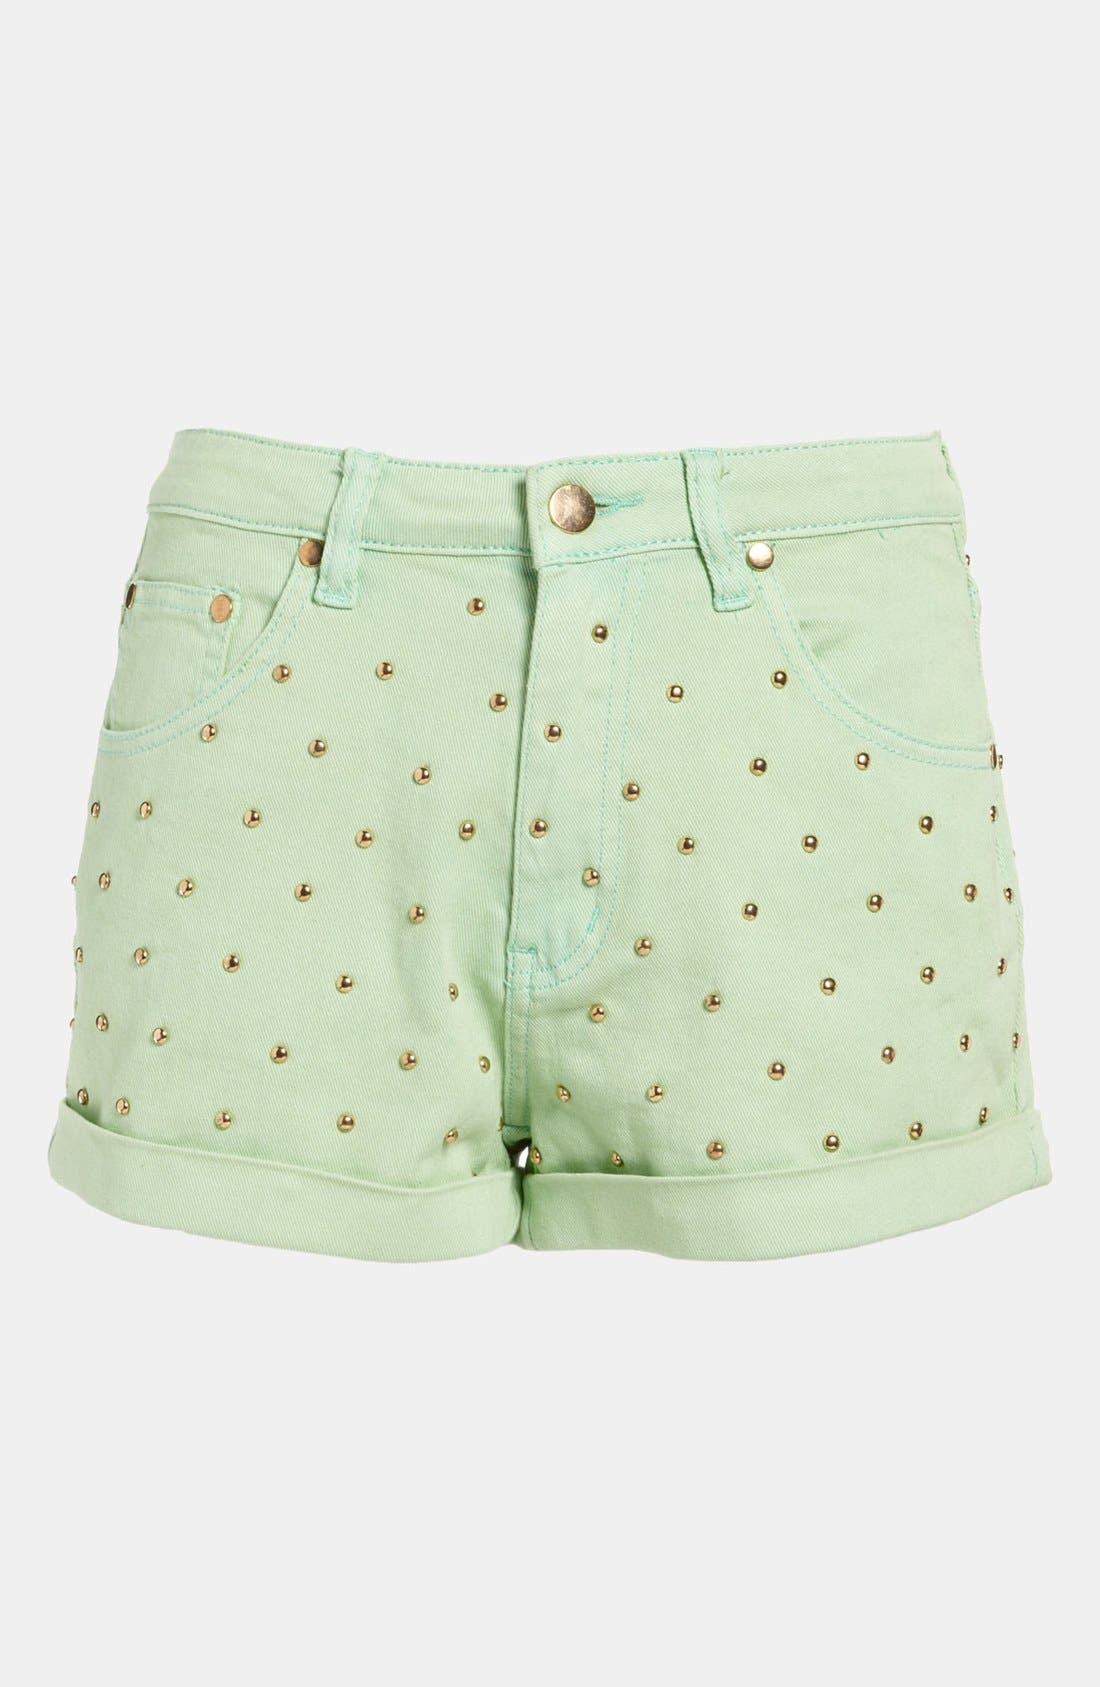 Alternate Image 1 Selected - MINKPINK 'Cheeky Stud' High Waist Shorts